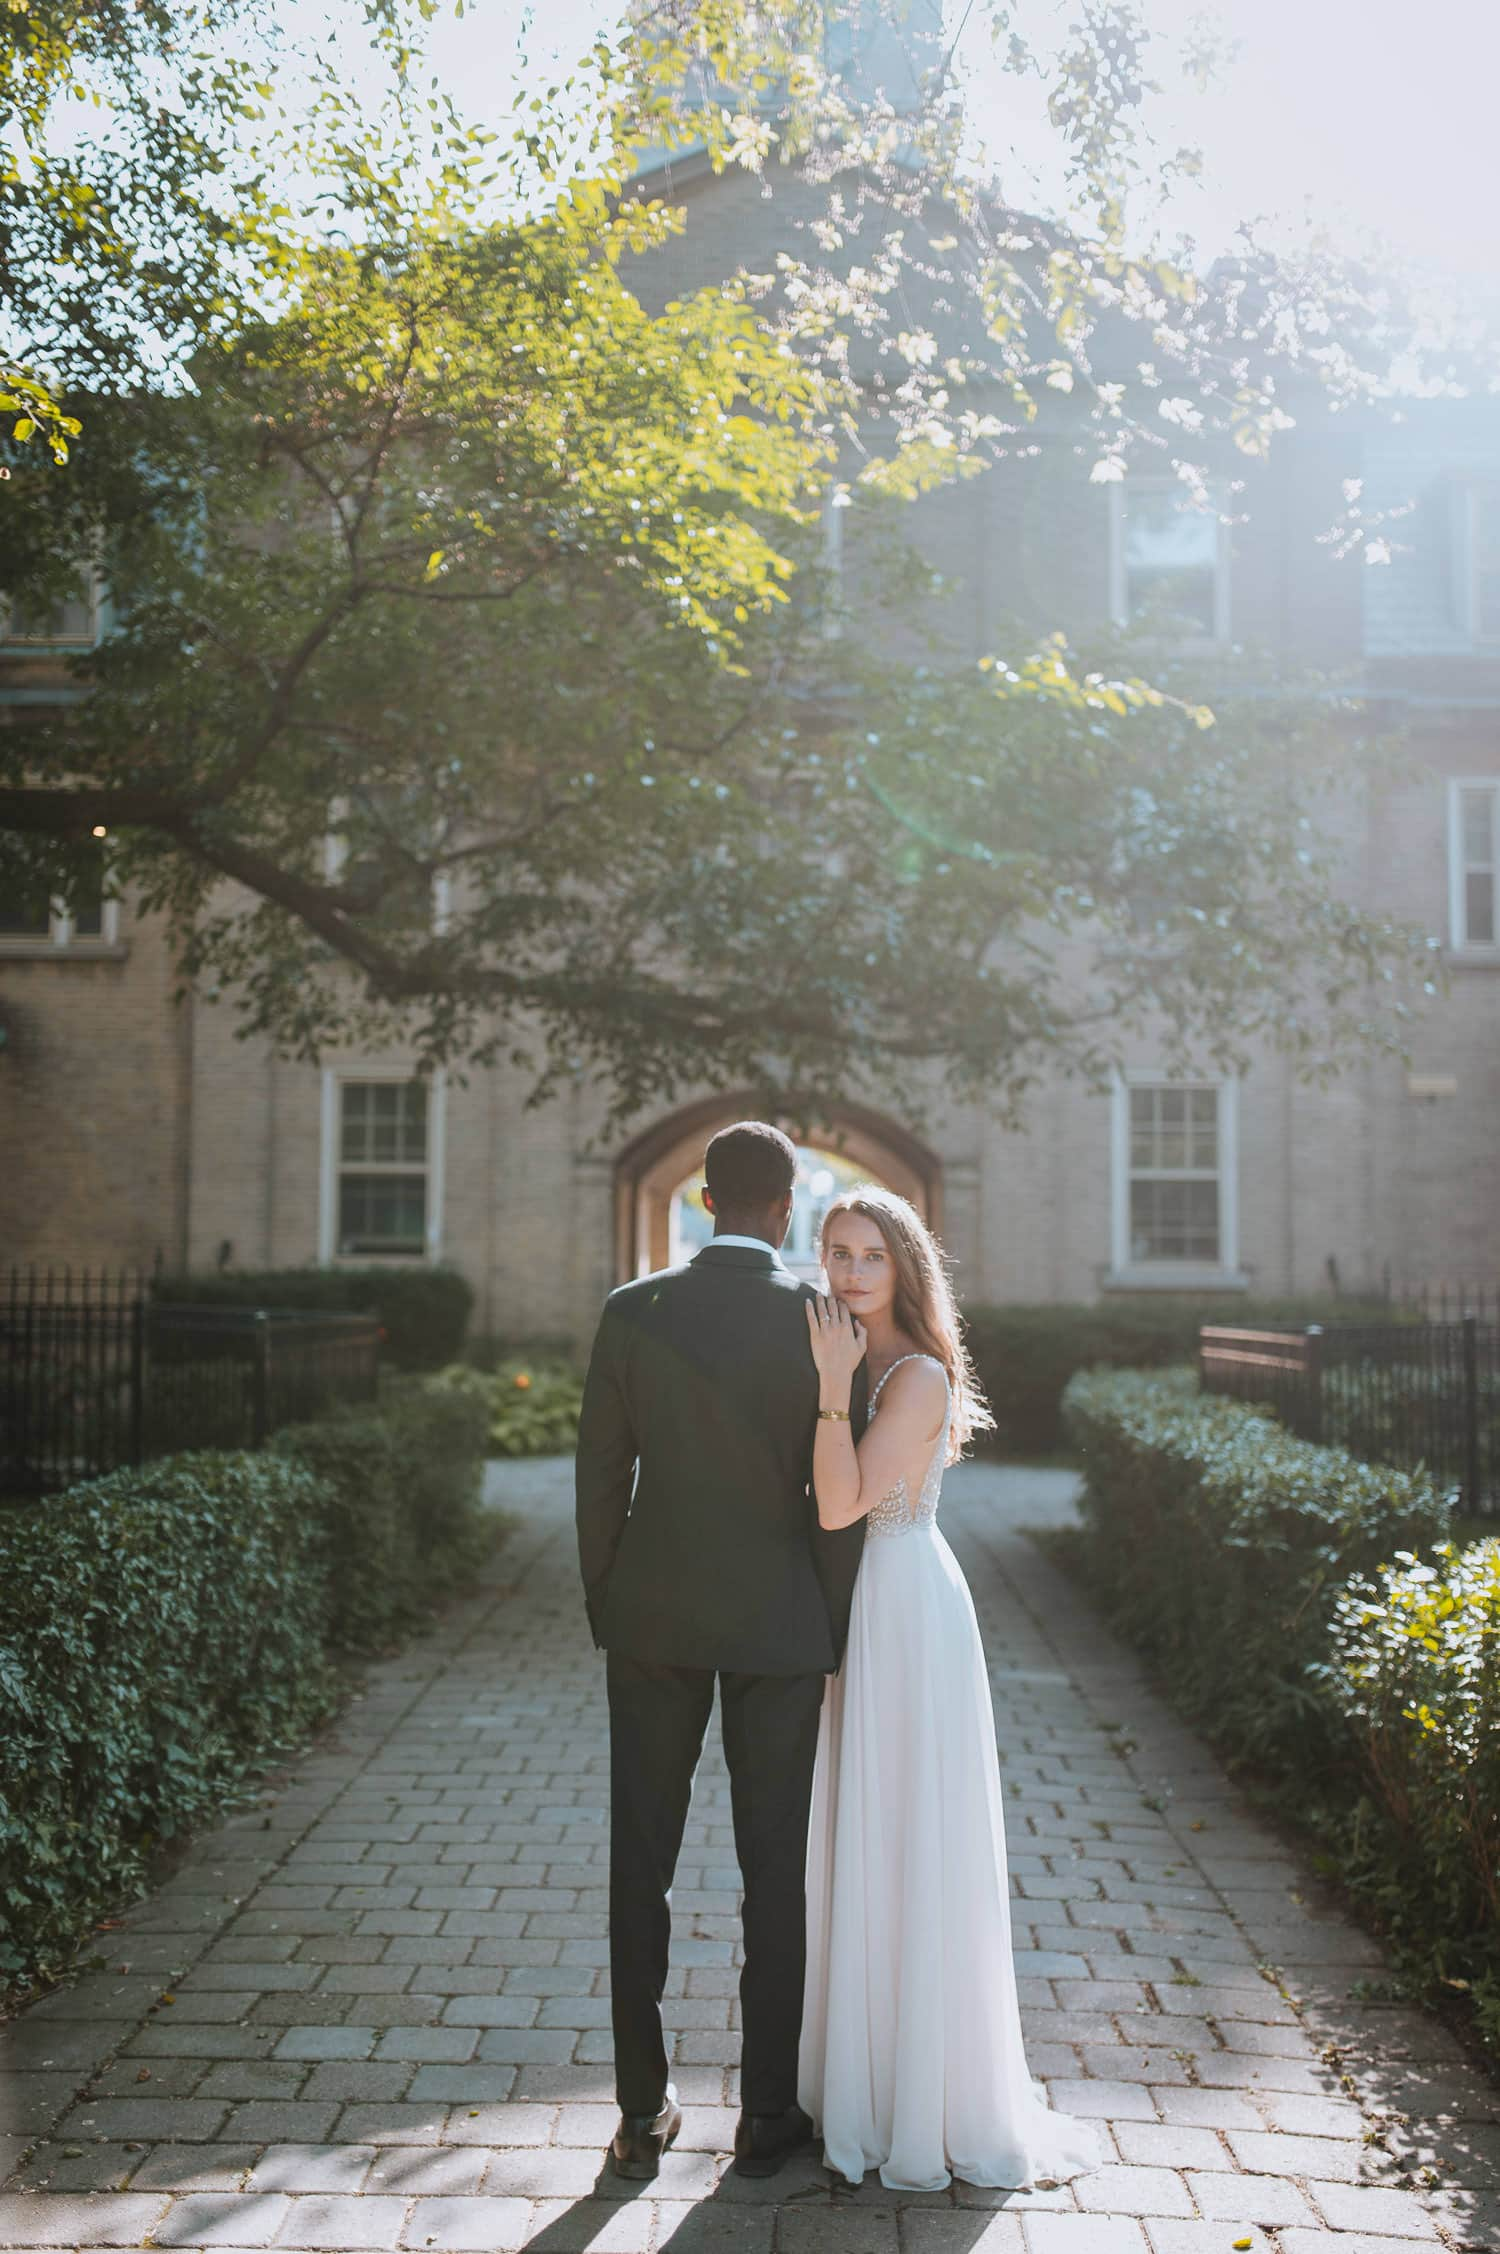 University of Toronto Wedding Photography at the Law School